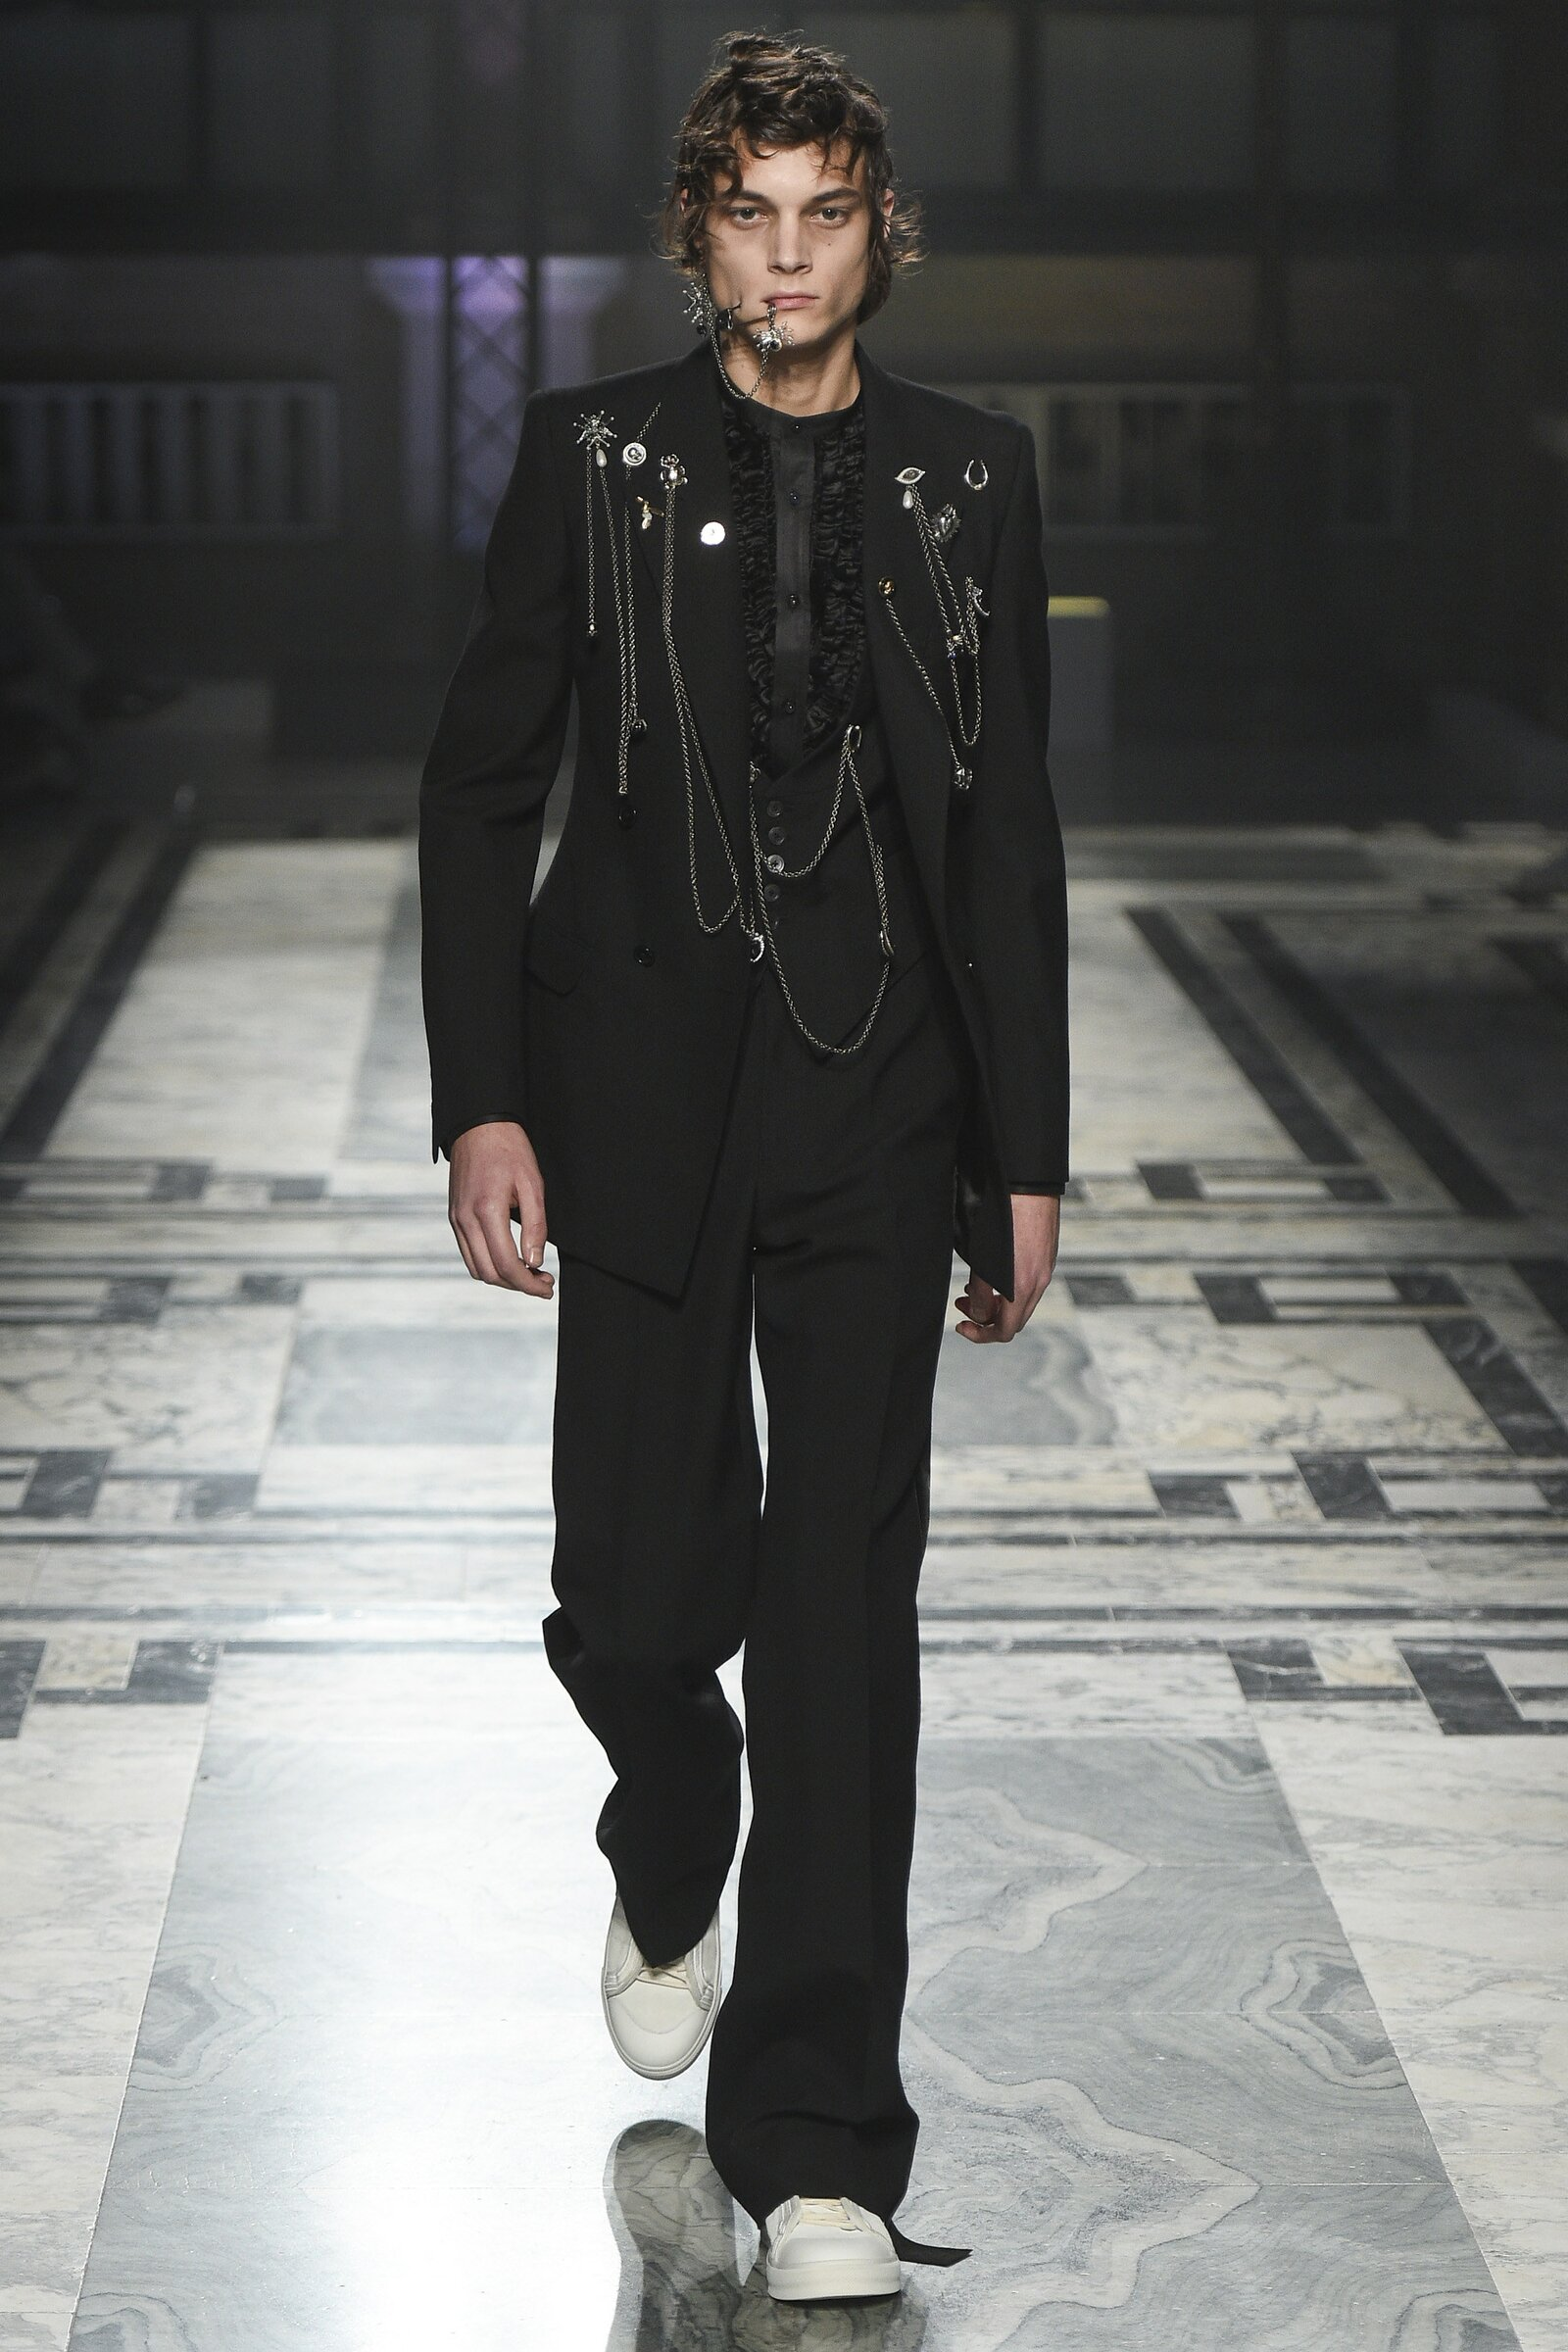 Alexander McQueen - London Collections: Men AW 2016